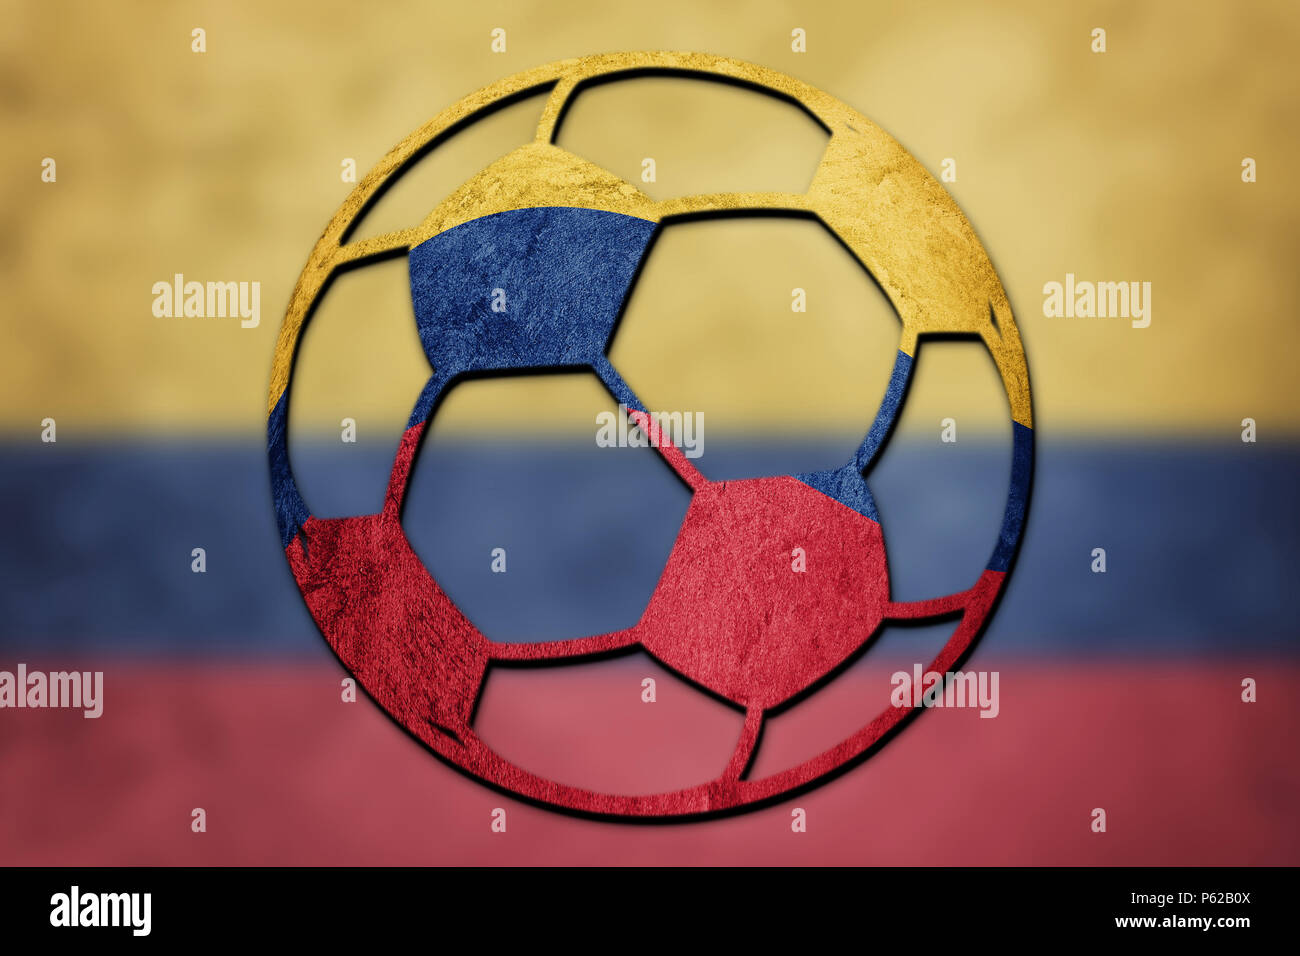 67715d8909a Soccer ball national Colombia flag. Colombian football ball. - Stock Image